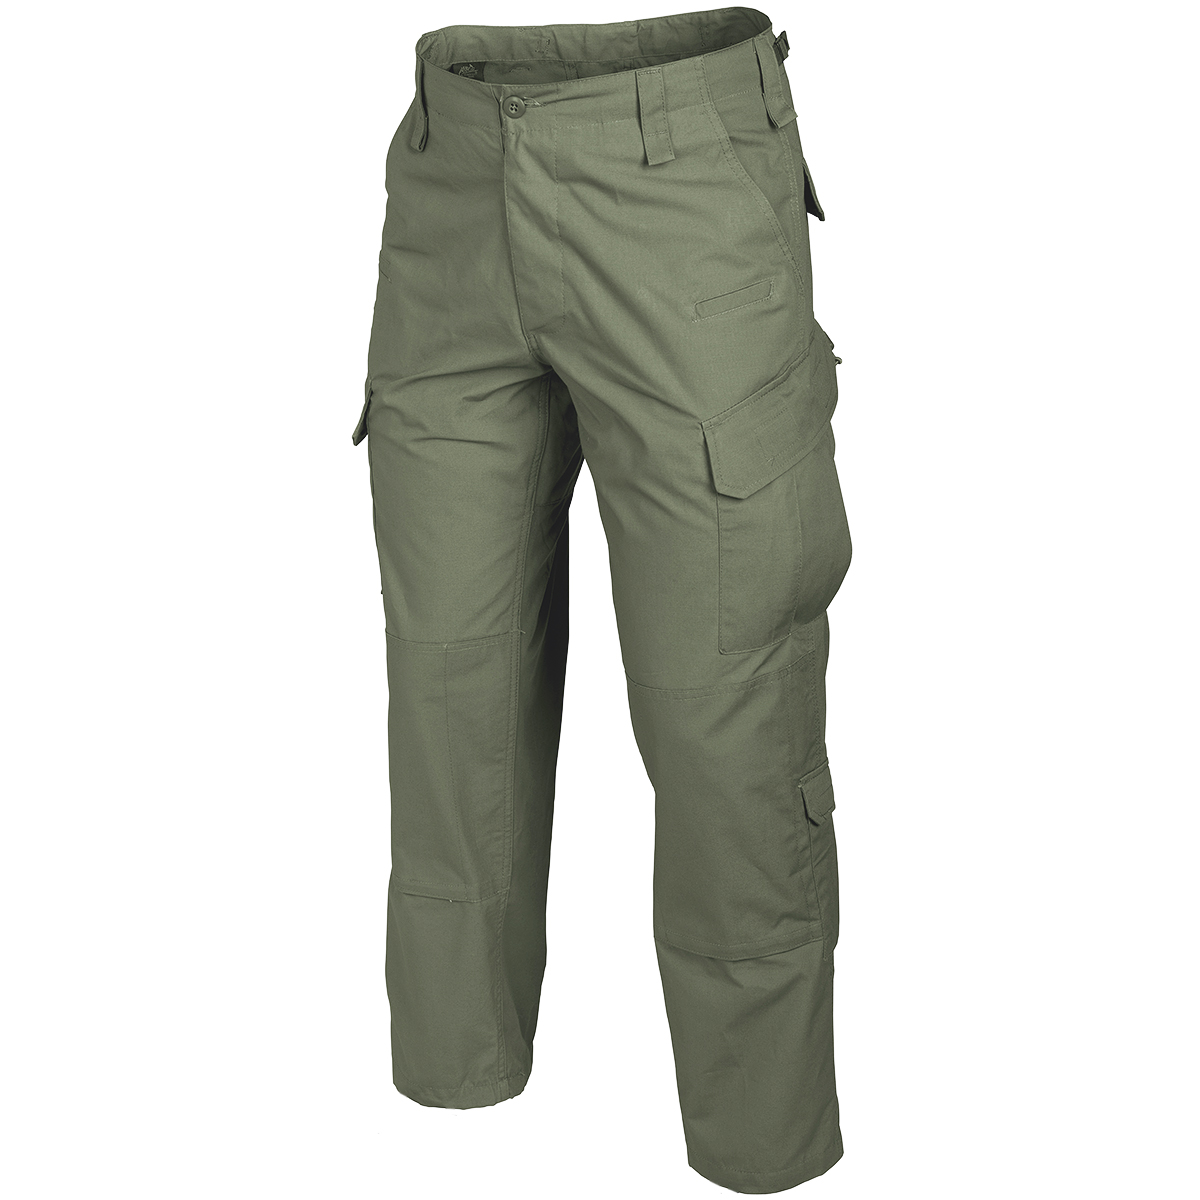 Bring a touch of practicality to your style with Matalan's range of cargo trousers & combat pants. Shop online today with free click & collect.